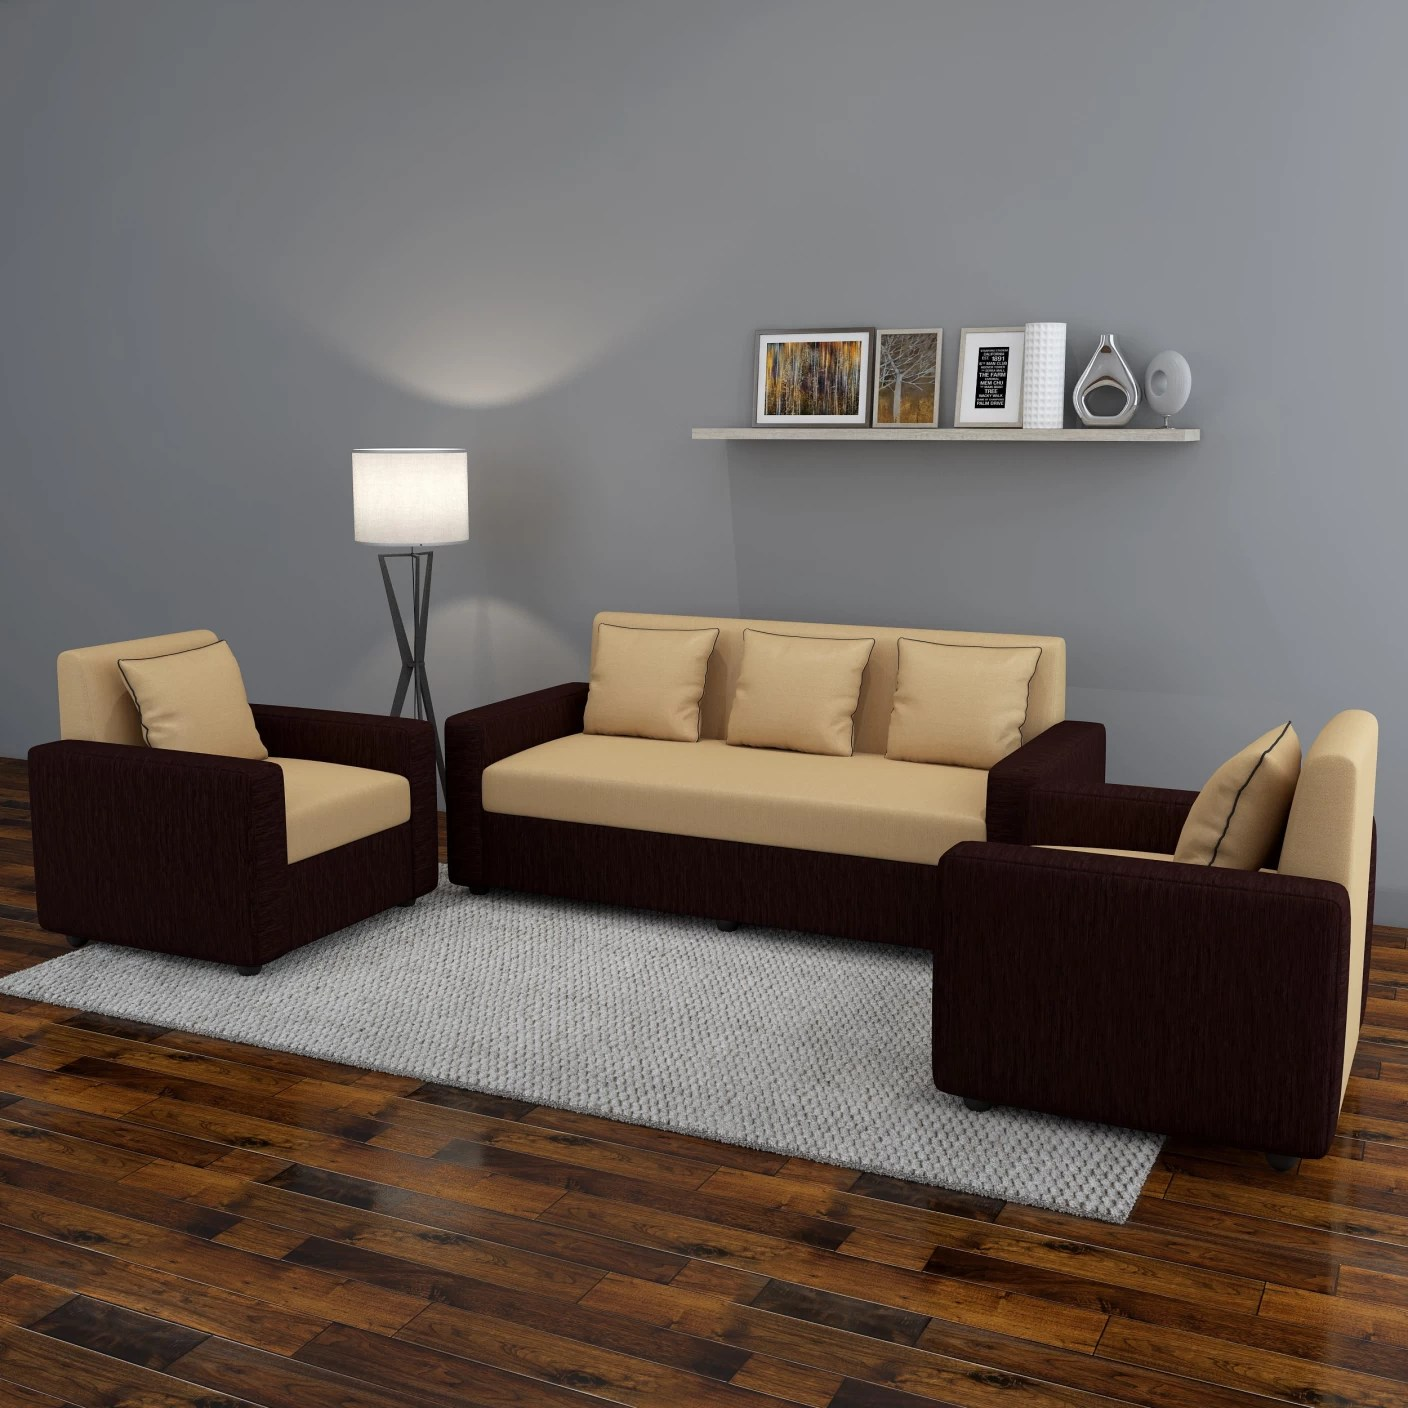 Sofa Set Price Haldwani Bharat Lifestyle Tulip311 Fabric 3 43 1 43 1 Brown Sofa Set